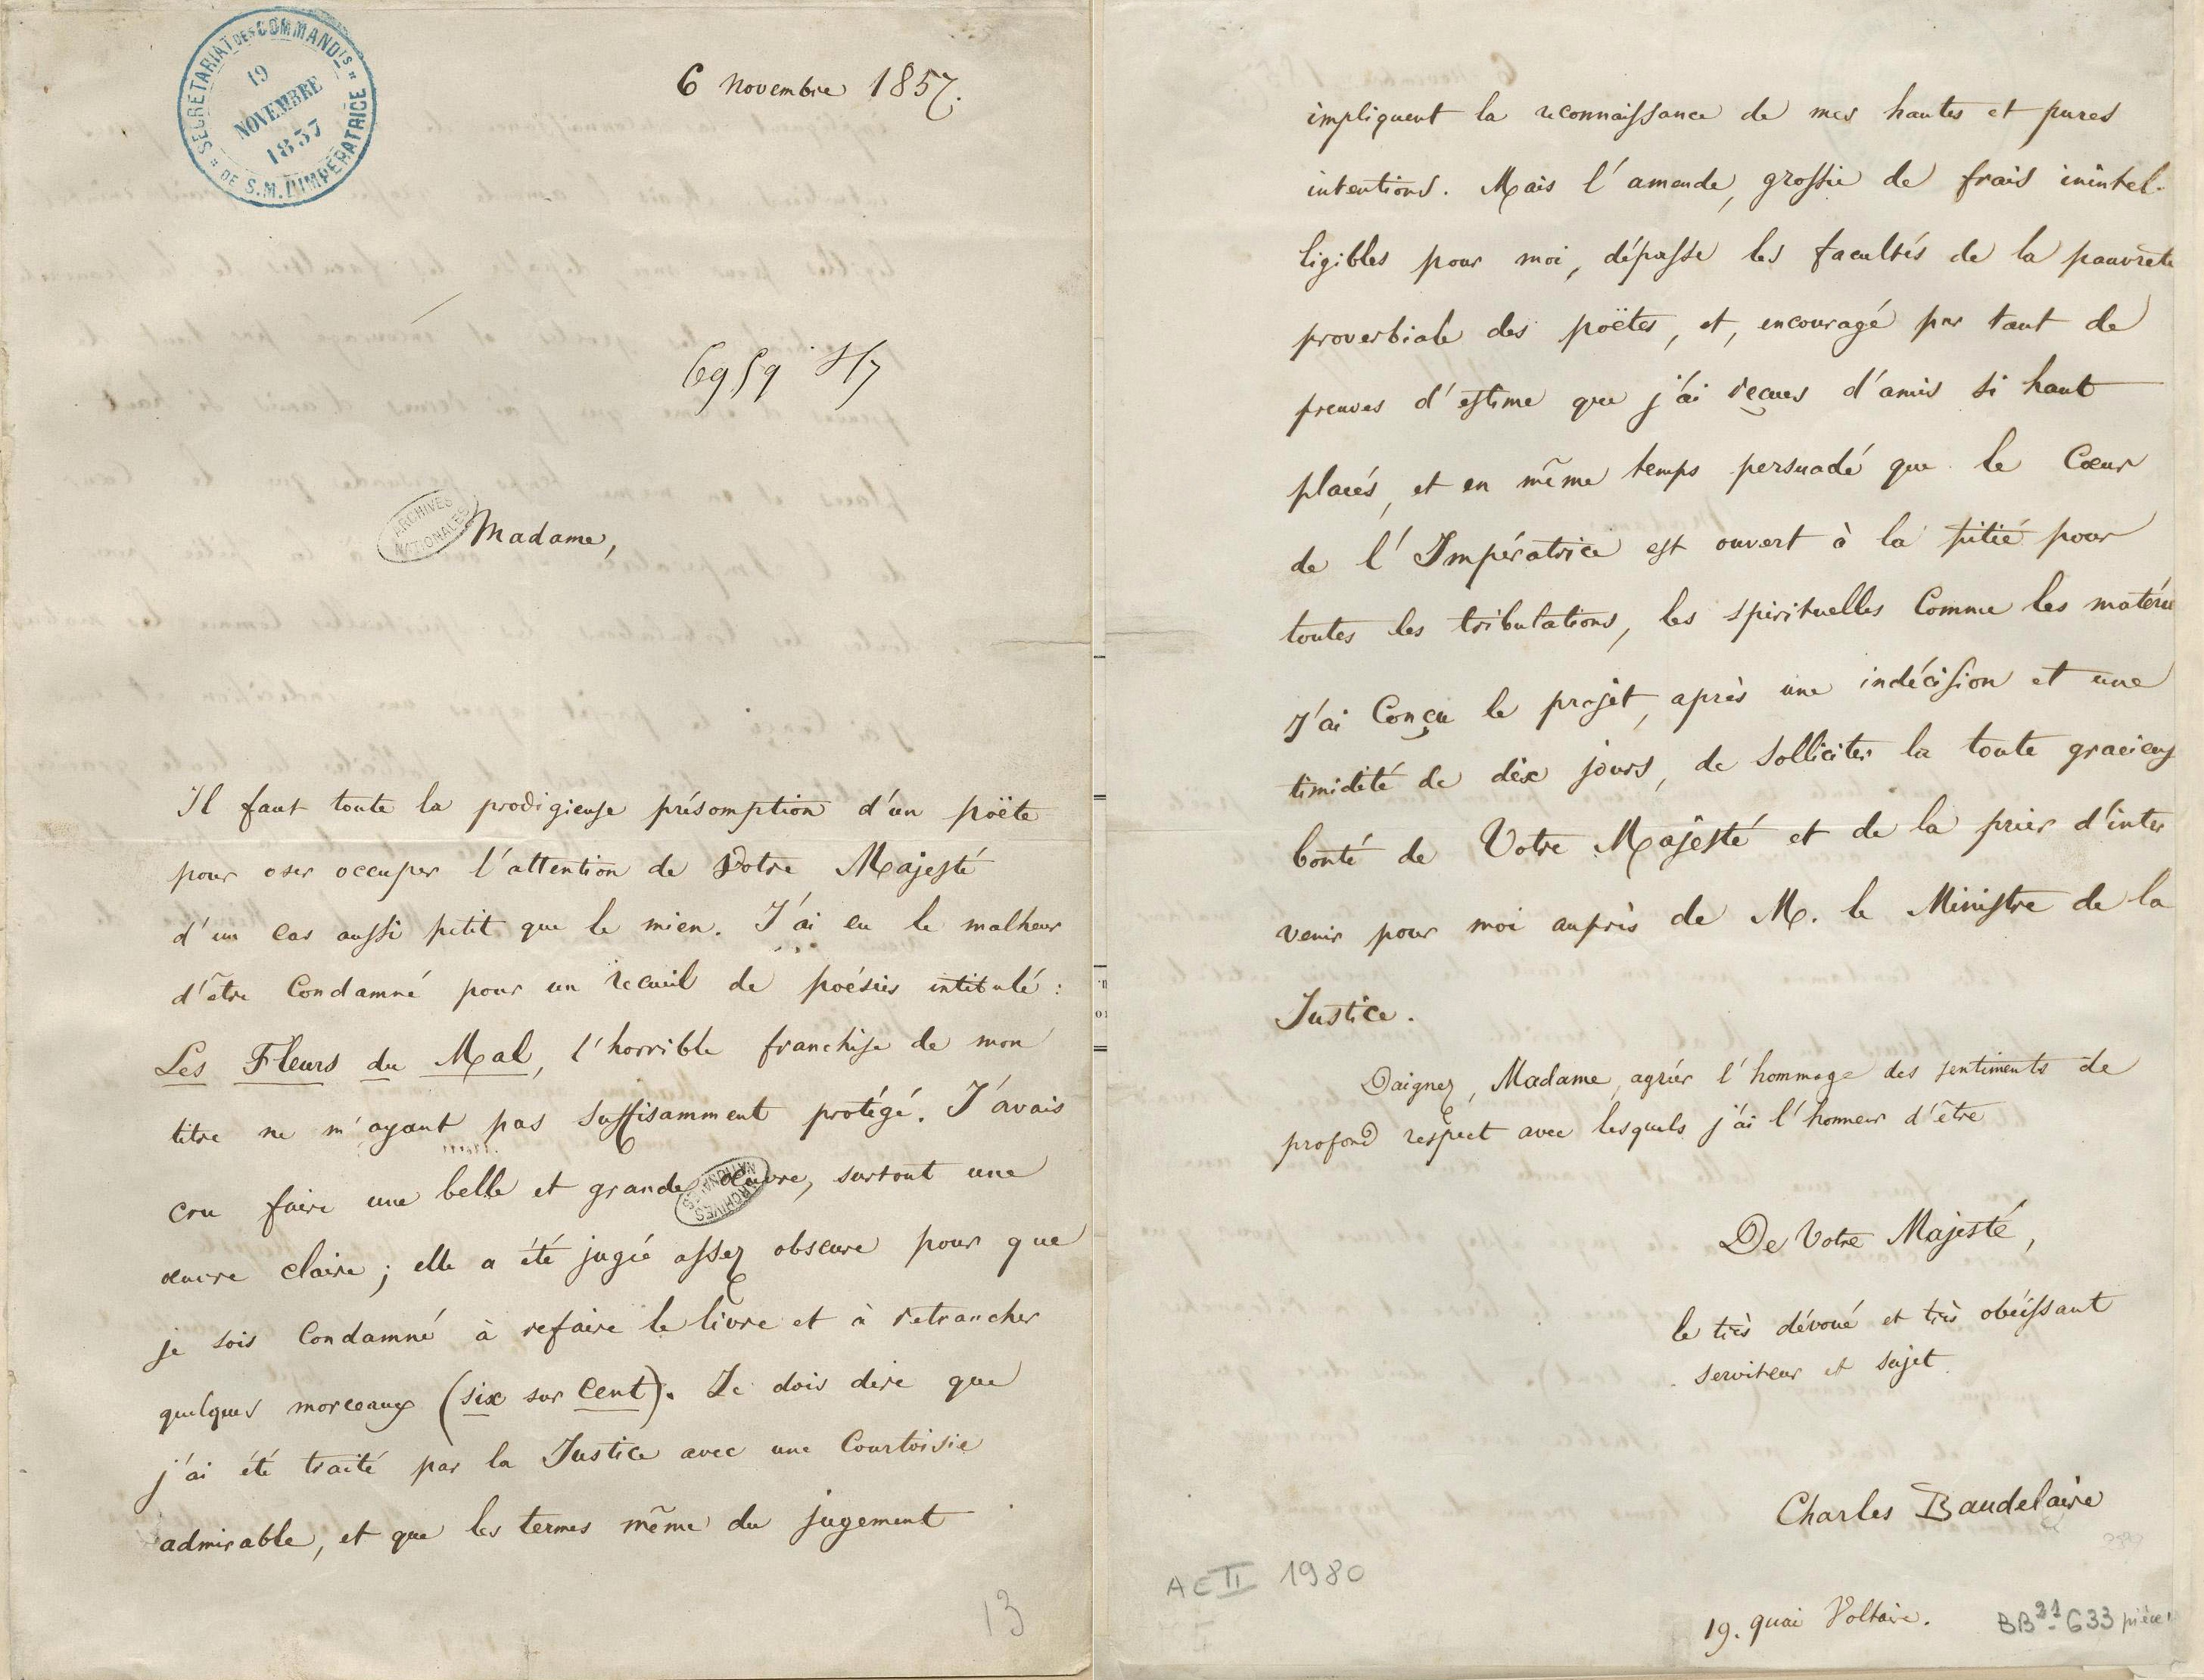 Letter From Charles Baudelaire To Empress Eugenie  NapoleonOrg